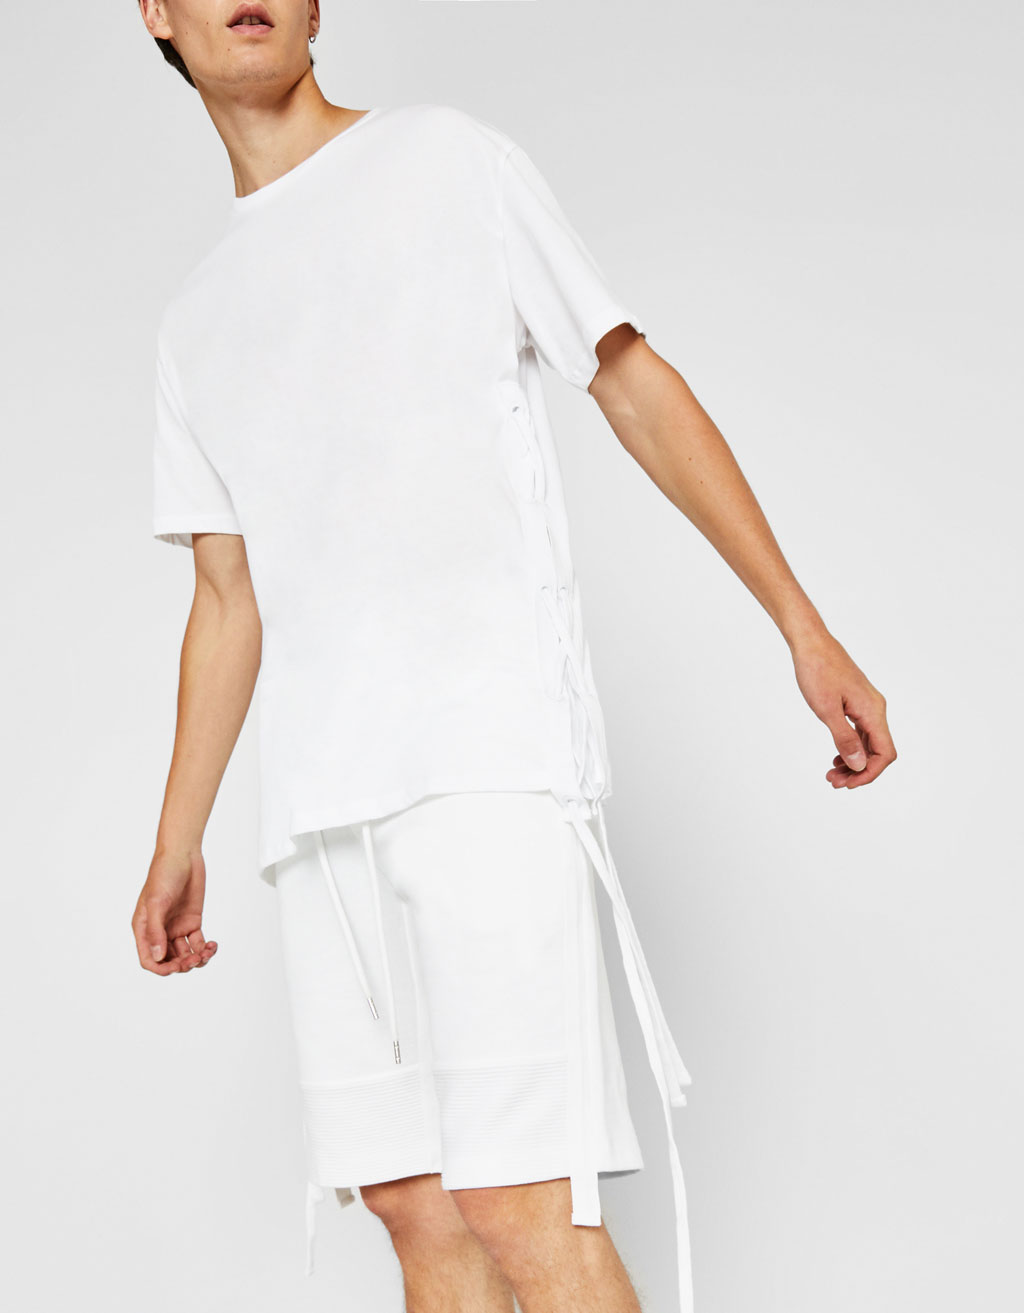 T-shirt with side cords